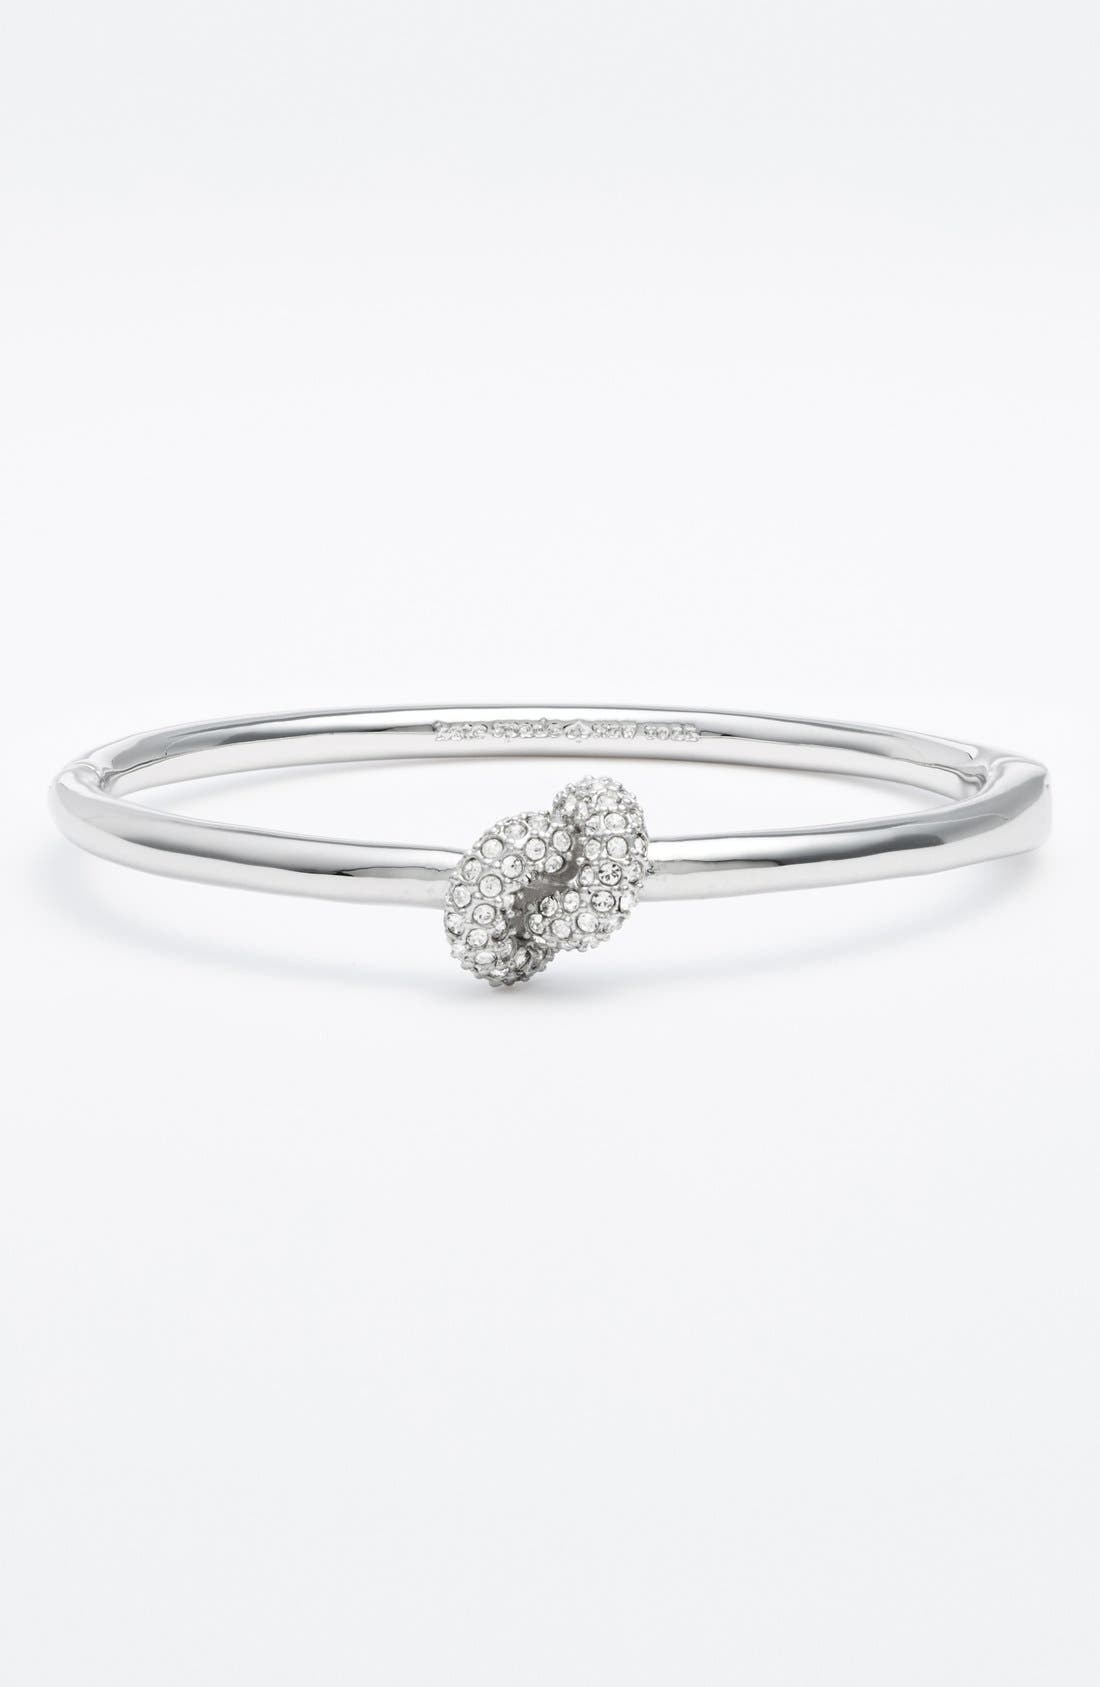 'sailors' knot' hinged bracelet,                         Main,                         color, Clear/ Silver